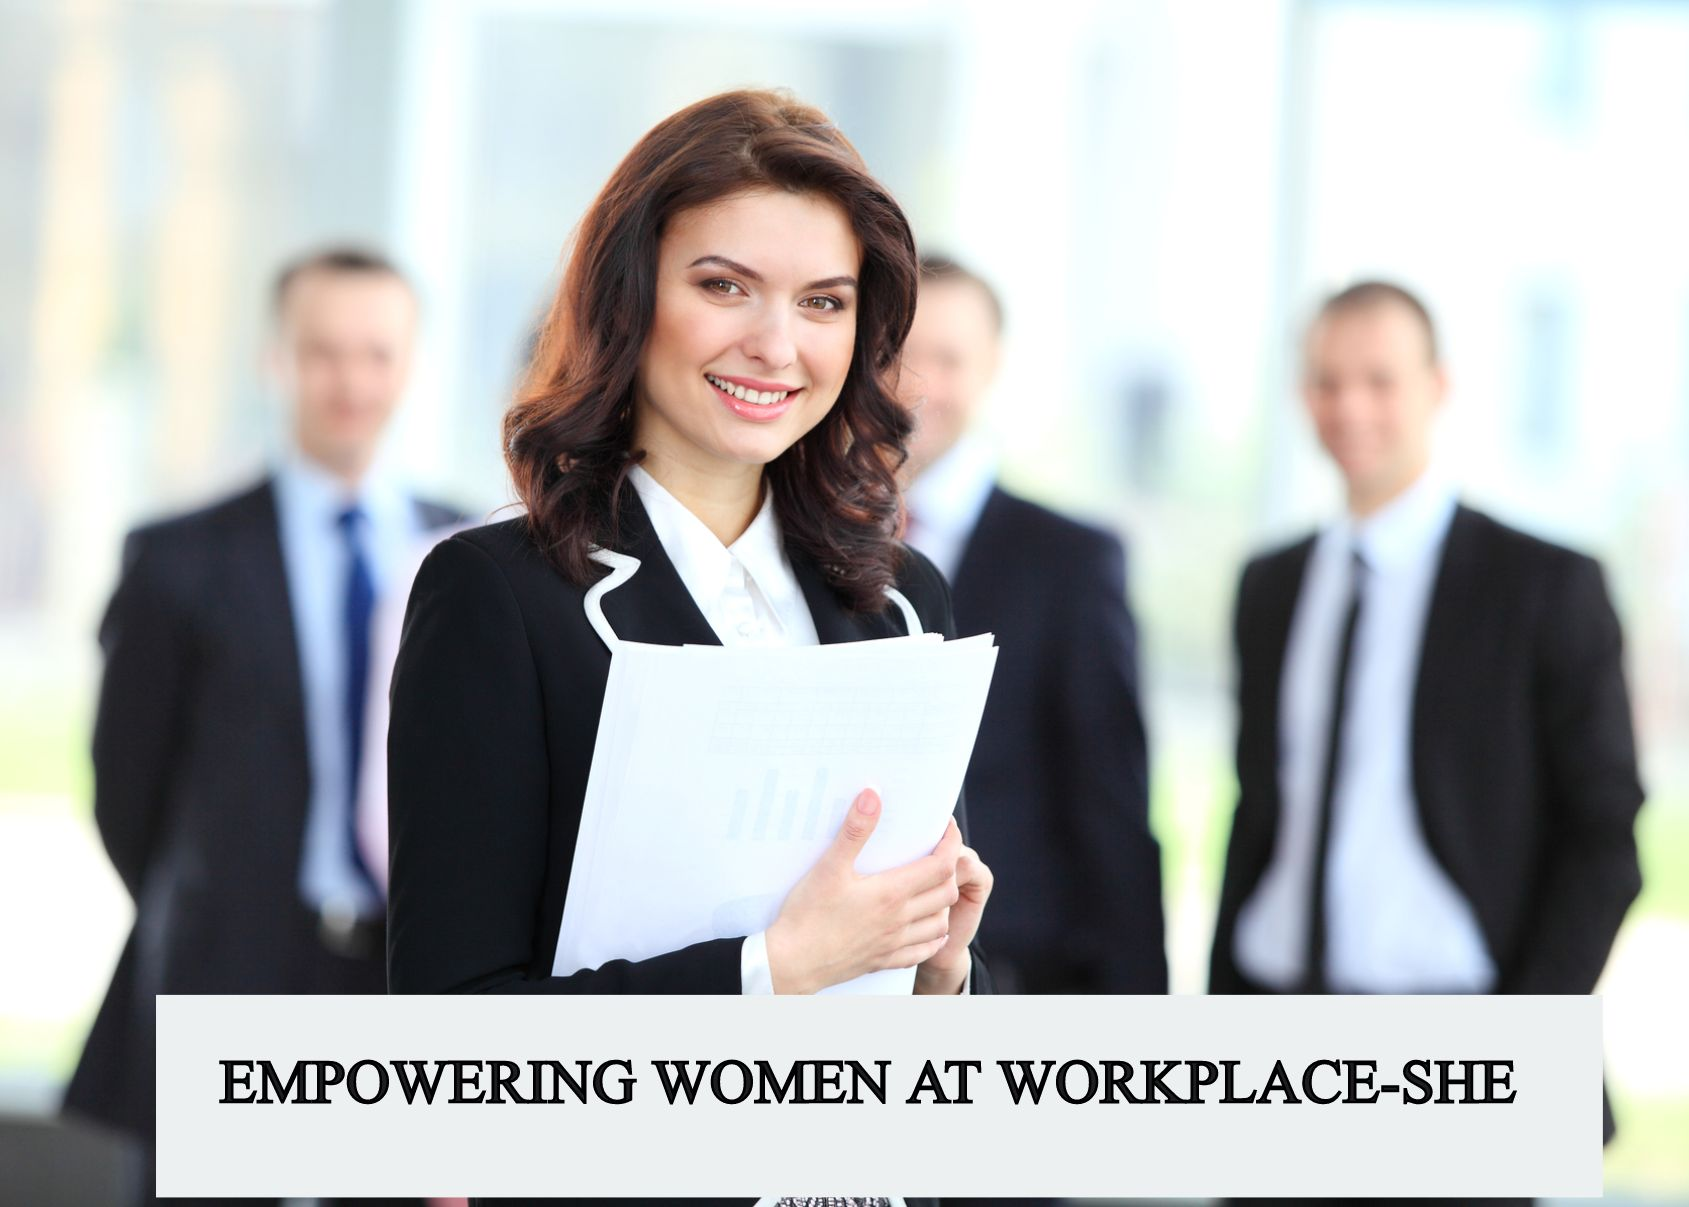 Women Safety at Workplace- SHE